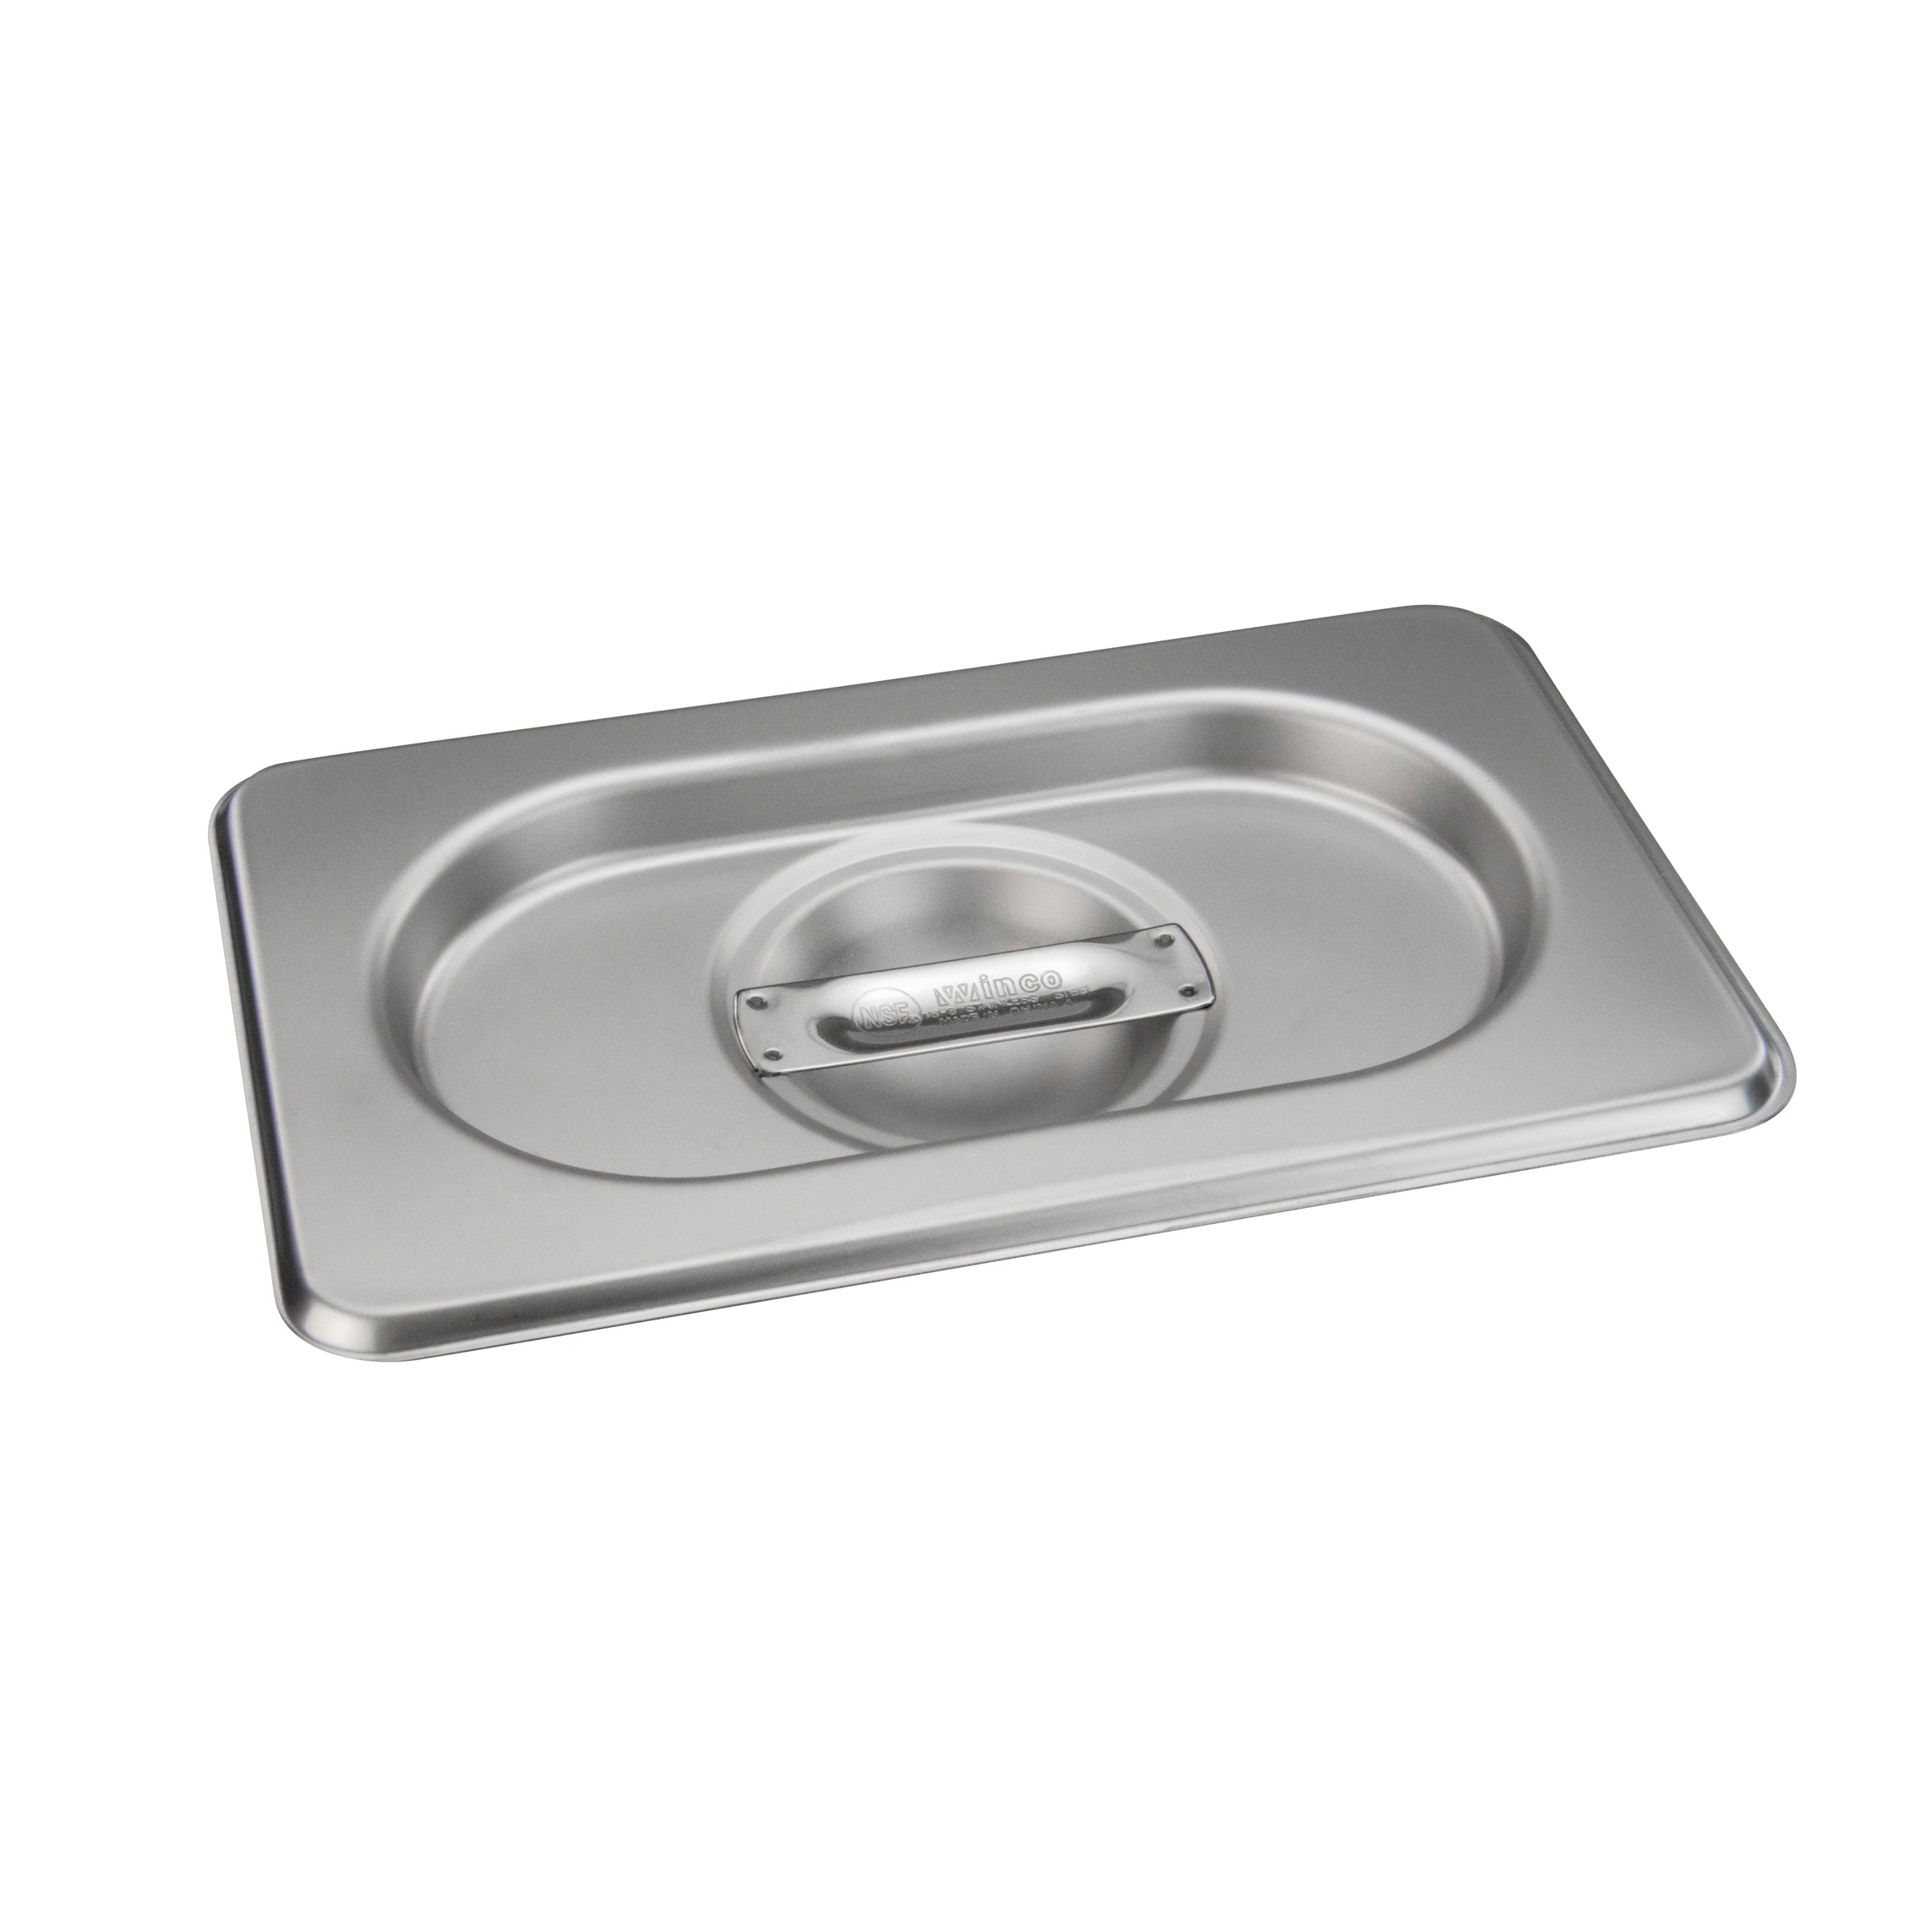 Winco SPSCN-GN steam table pan cover, stainless steel